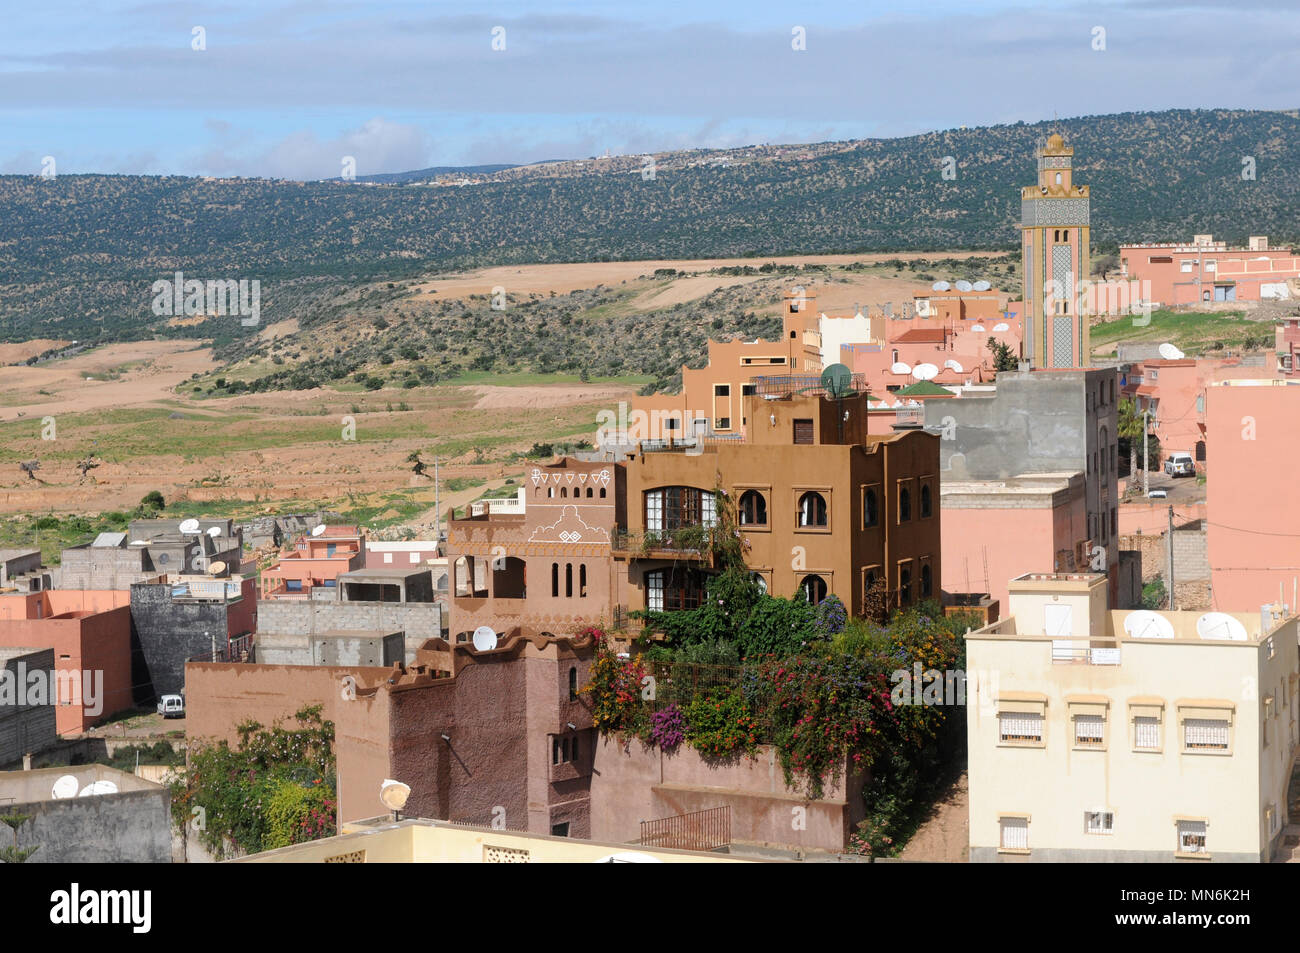 Tremendous Moroccan Homes Houses In Tagazout Morocco Stock Photo Interior Design Ideas Gentotryabchikinfo